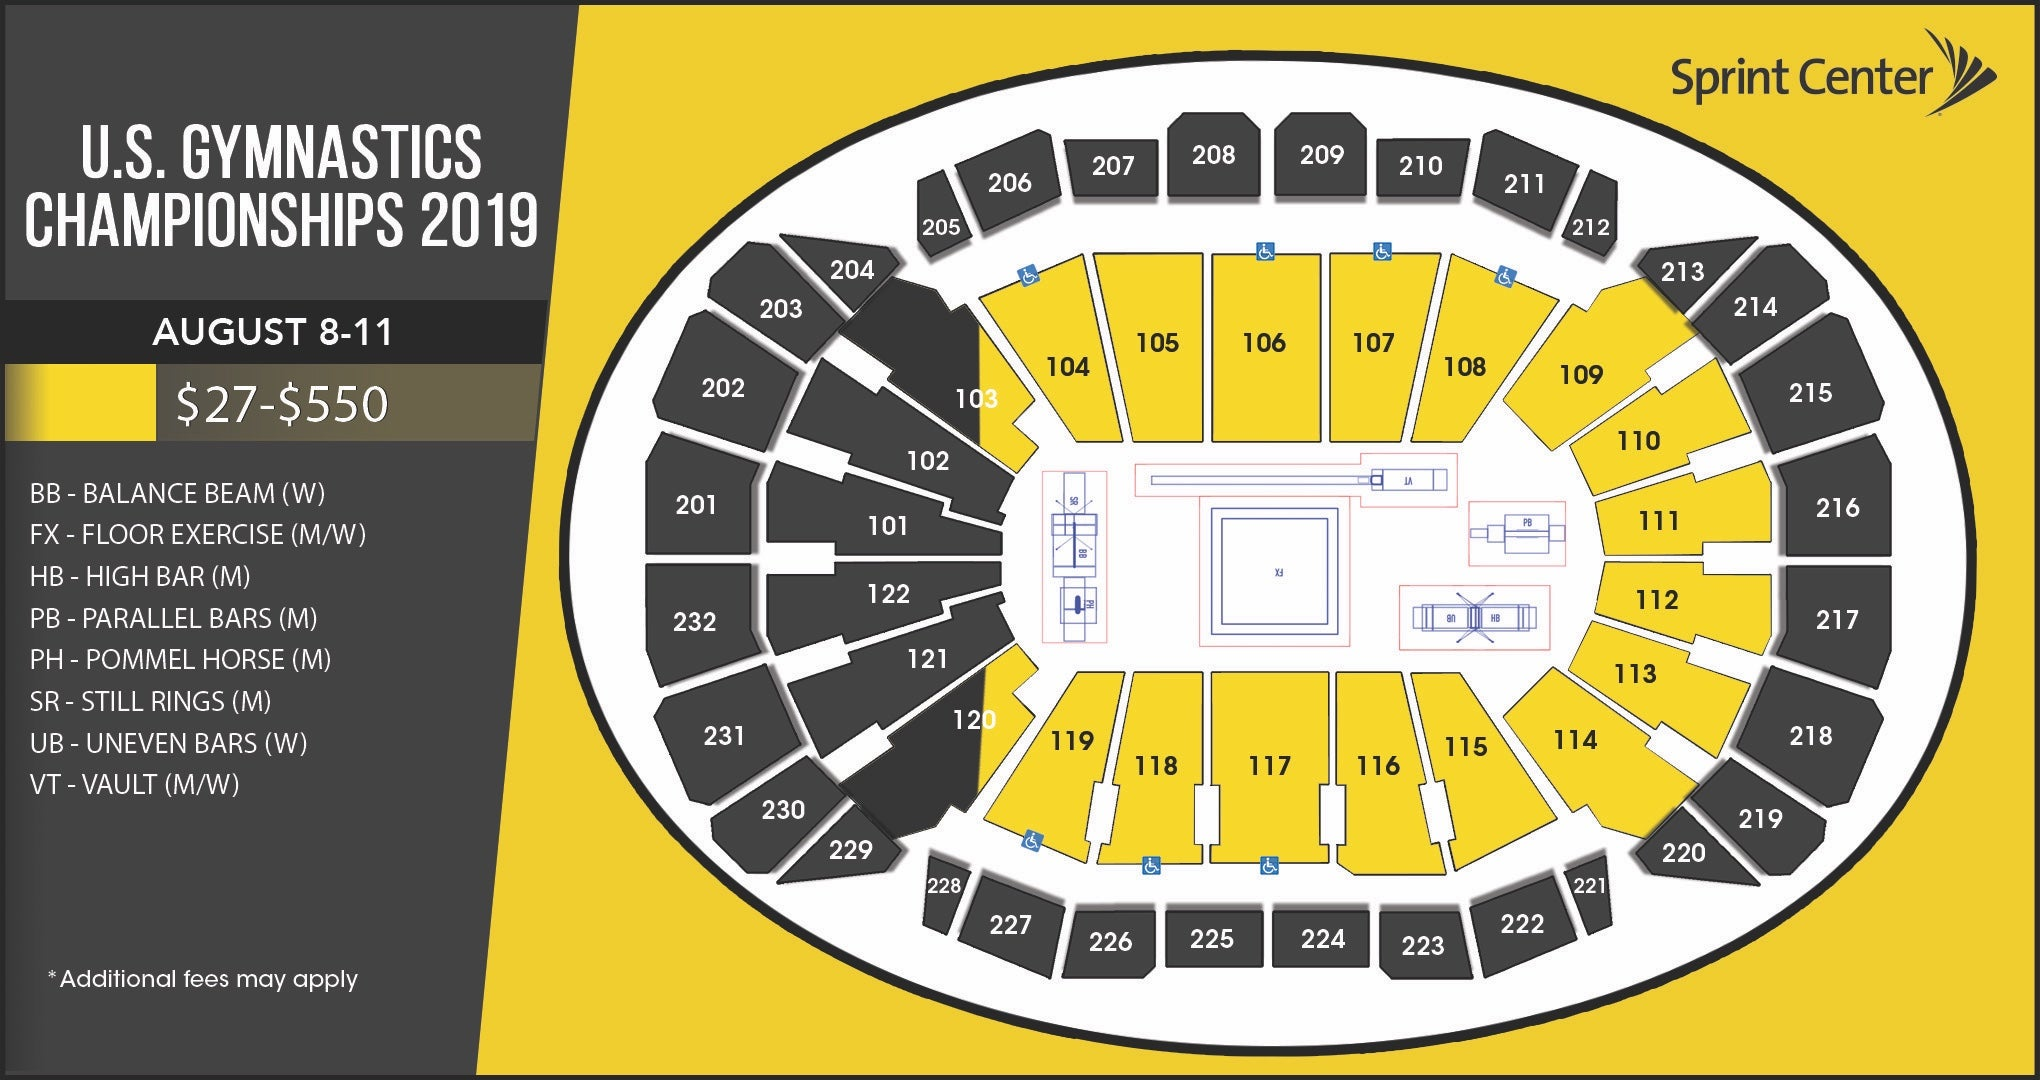 Seating Charts | Sprint Center